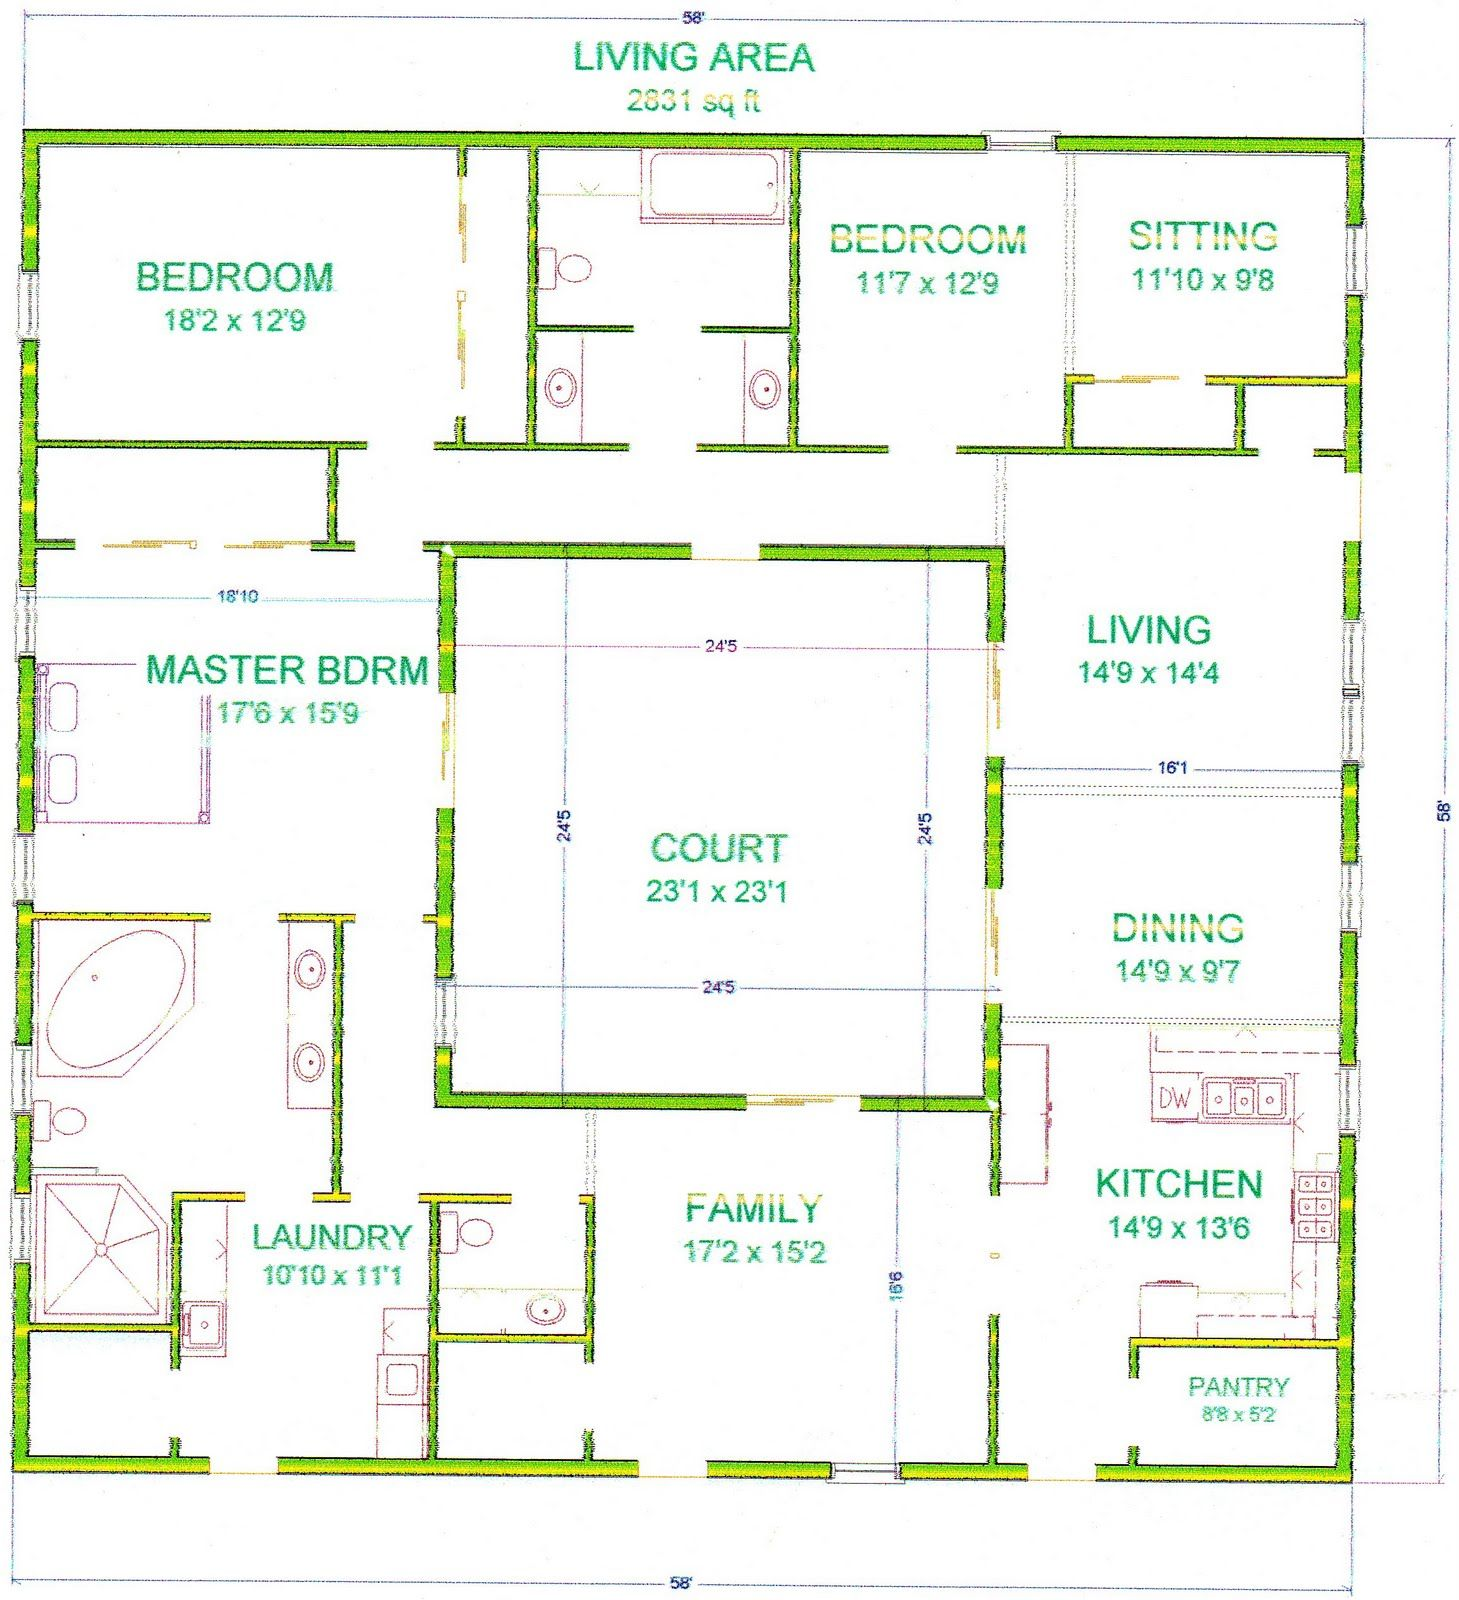 Center courtyard house plans with 2831 square feet this is one of my bigger houses i chose to make